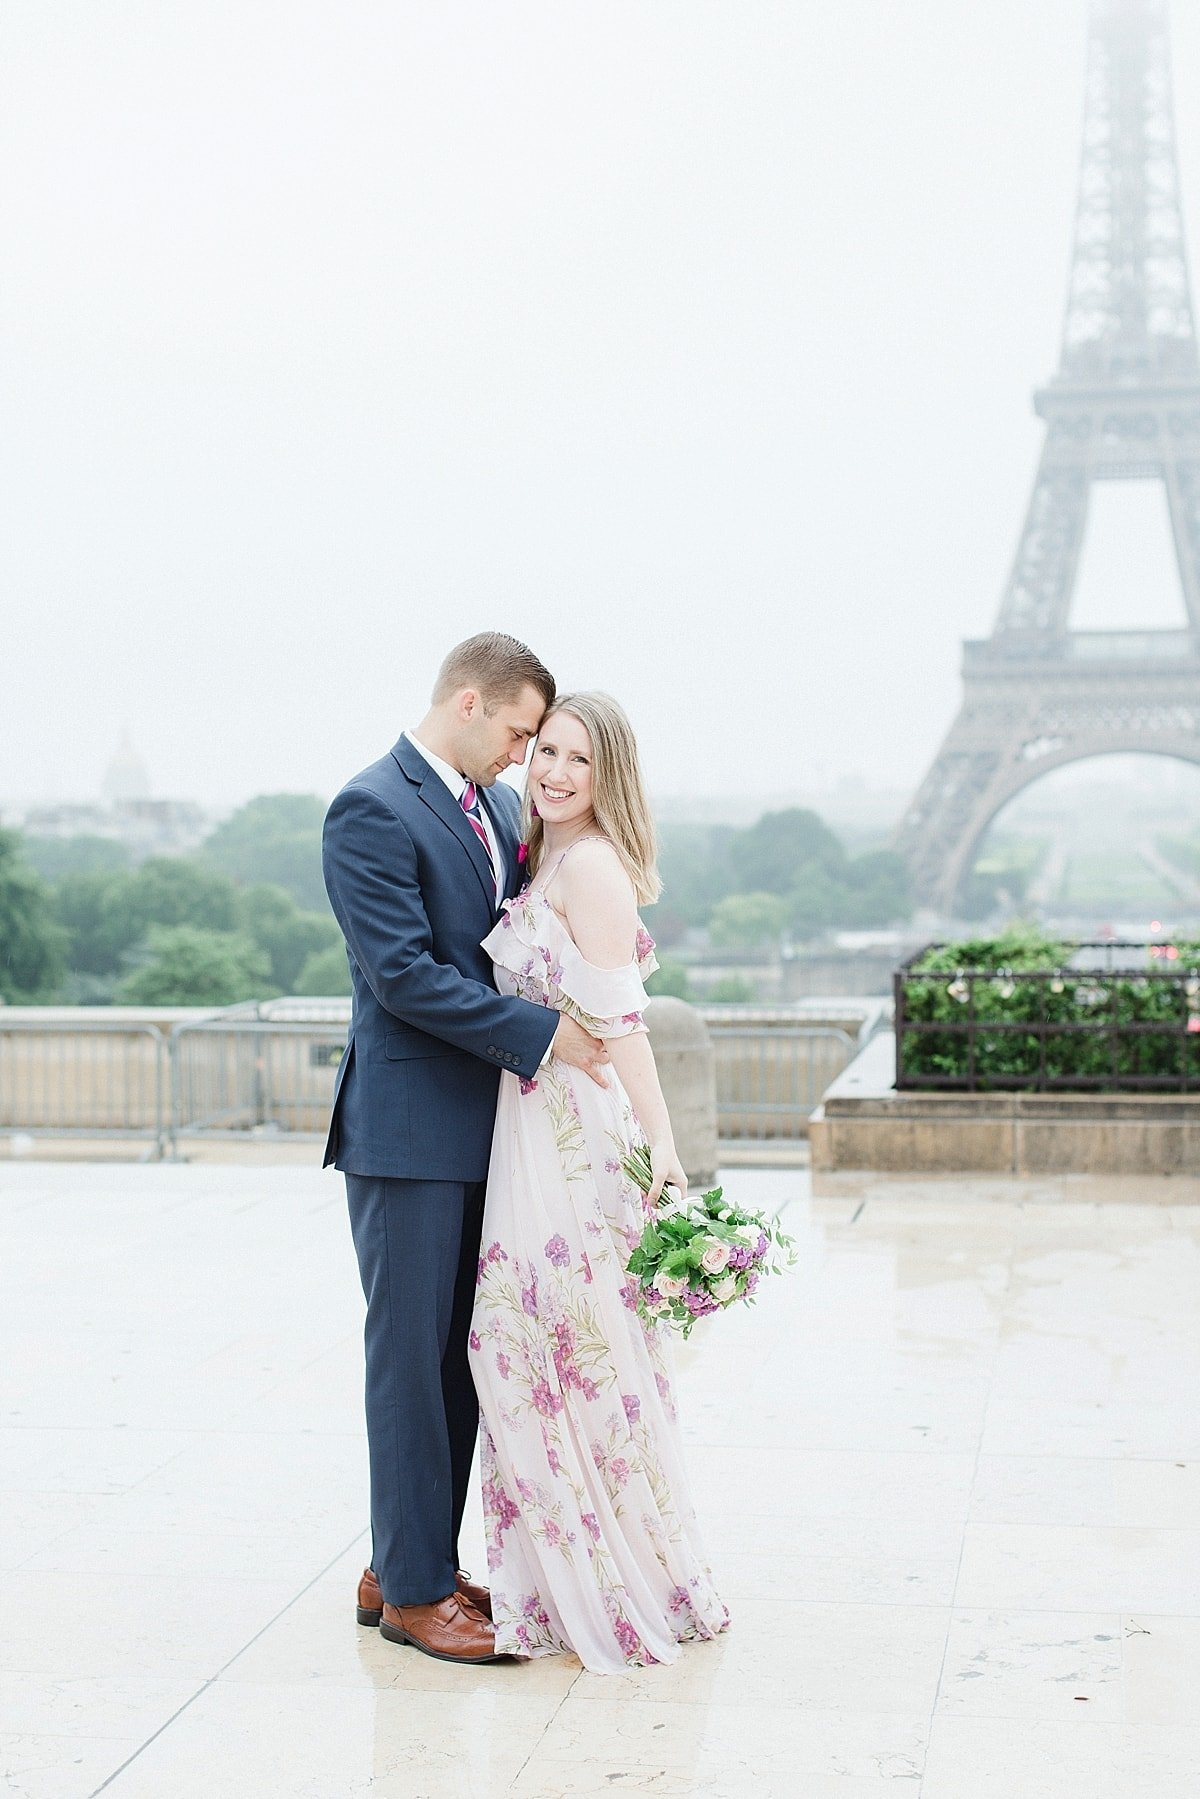 paris-photo-session-anniversary-alicia-yarrish-photography_05